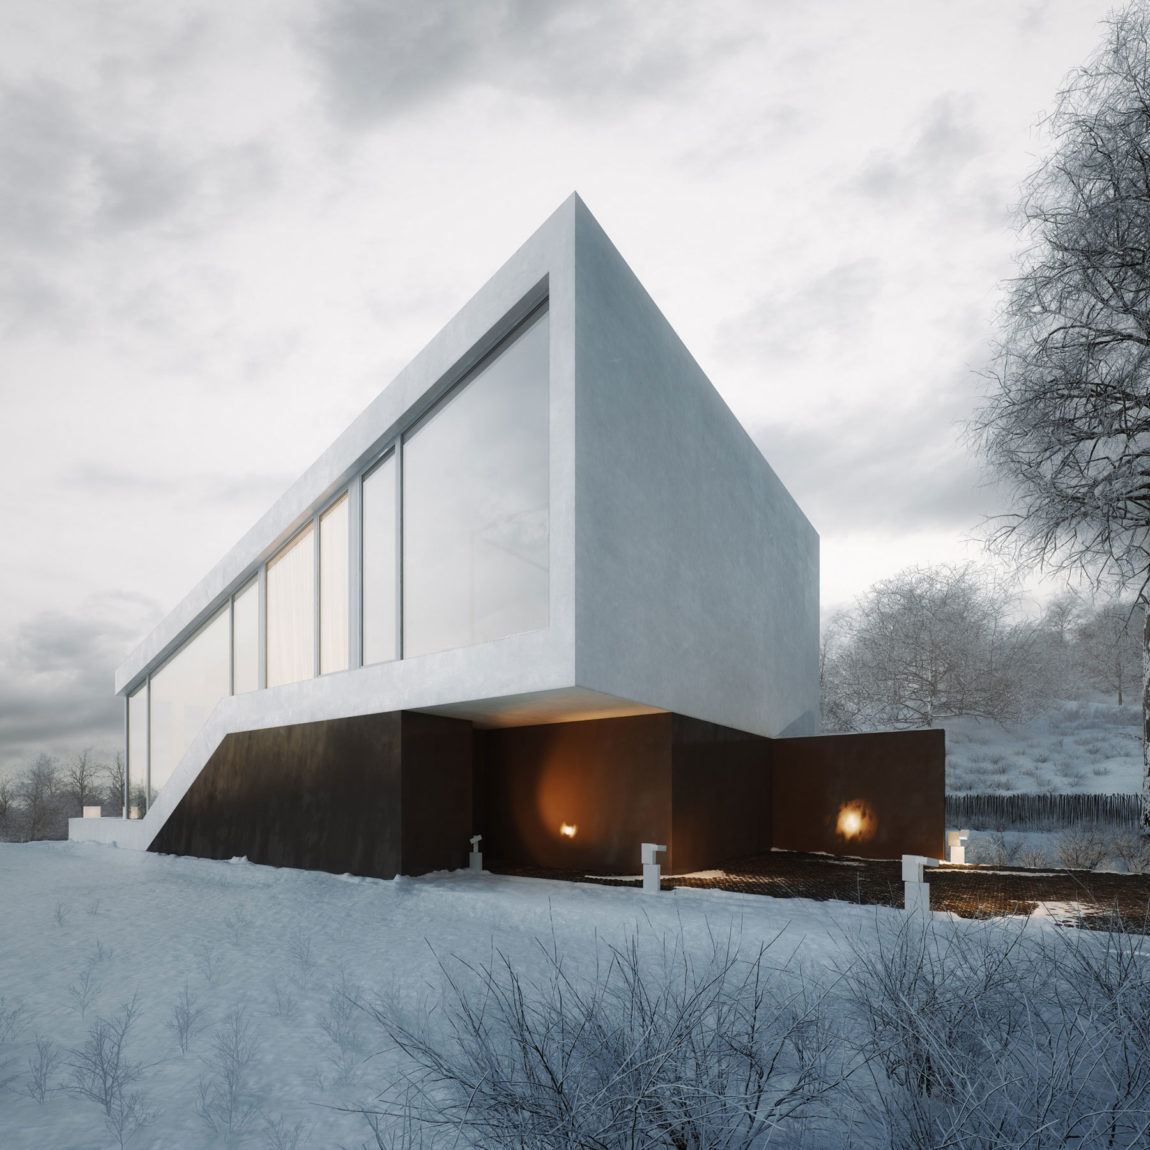 Slanted House by Michal Nowak (10)